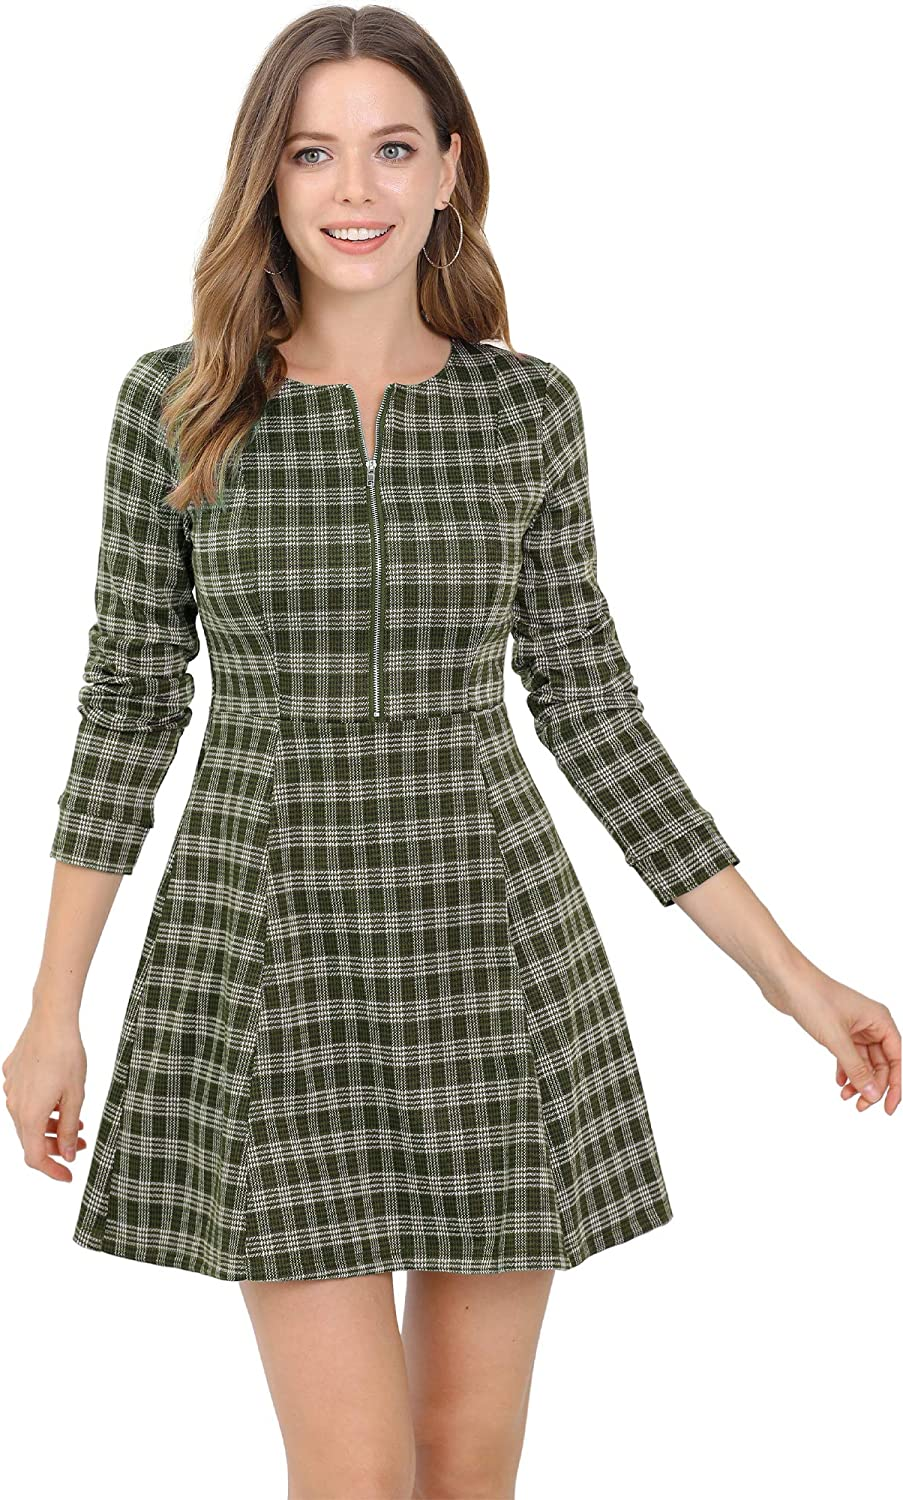 Allegra K Women's Vintage Plaid Houndstooth Long Sleeve Work Office Zip Up Fit and Flare Mini Dress